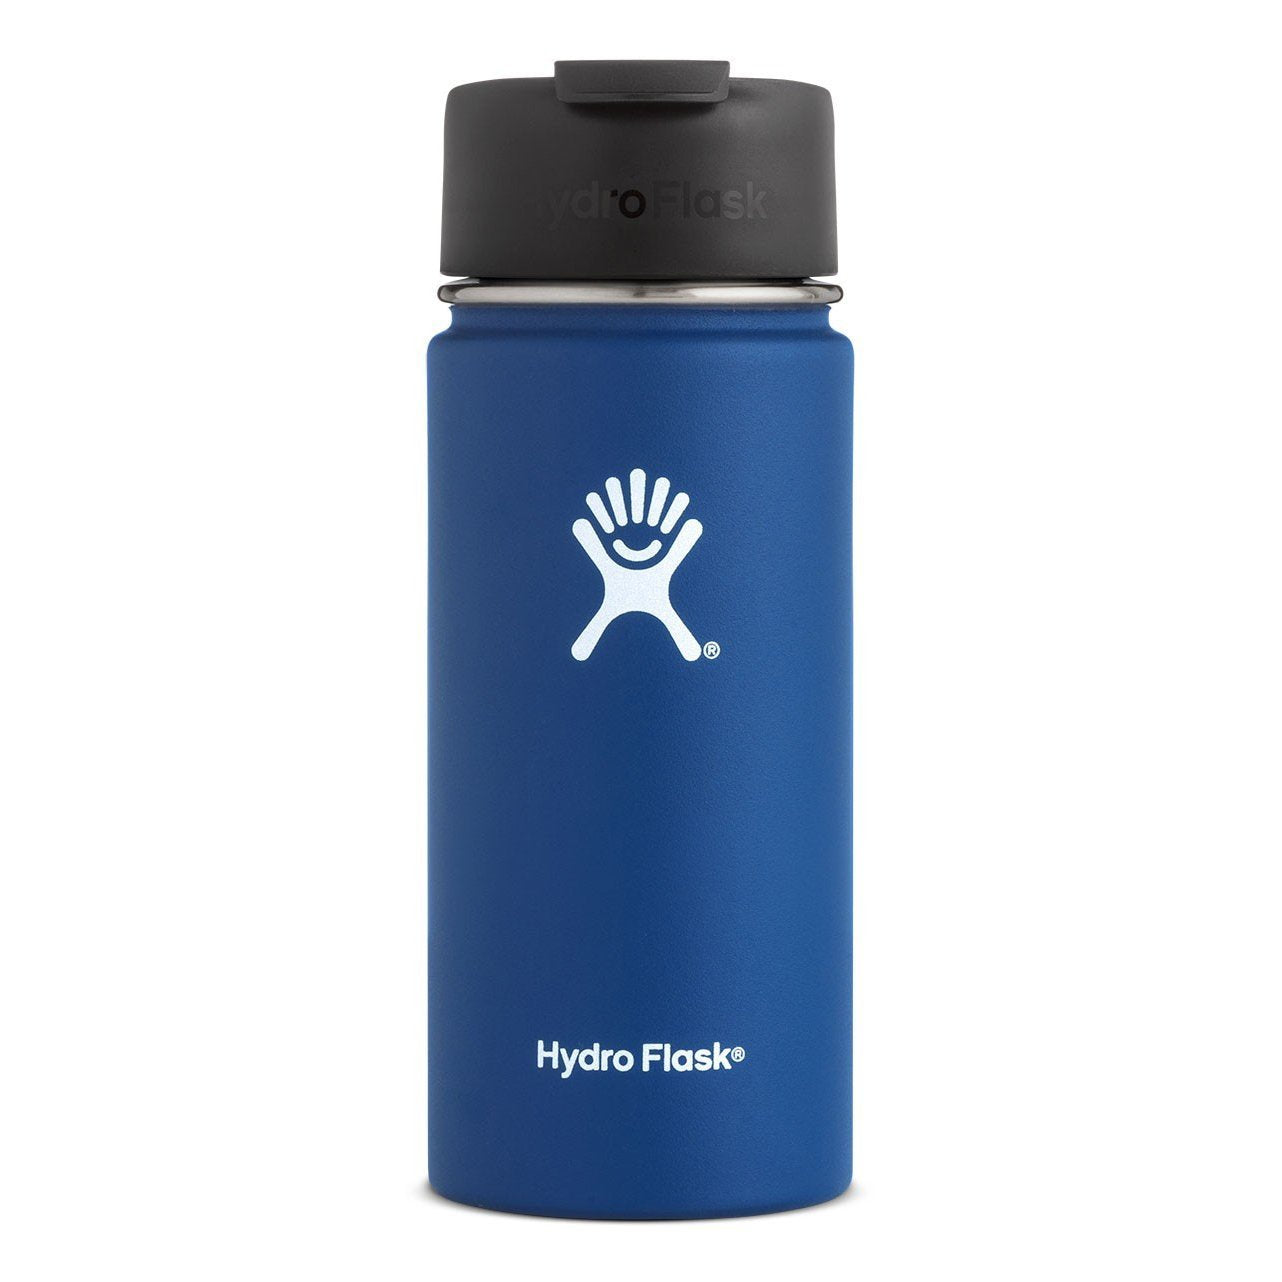 Hydro Flask | Coffee Flask | Insulated Coffee Flask | Cobalt